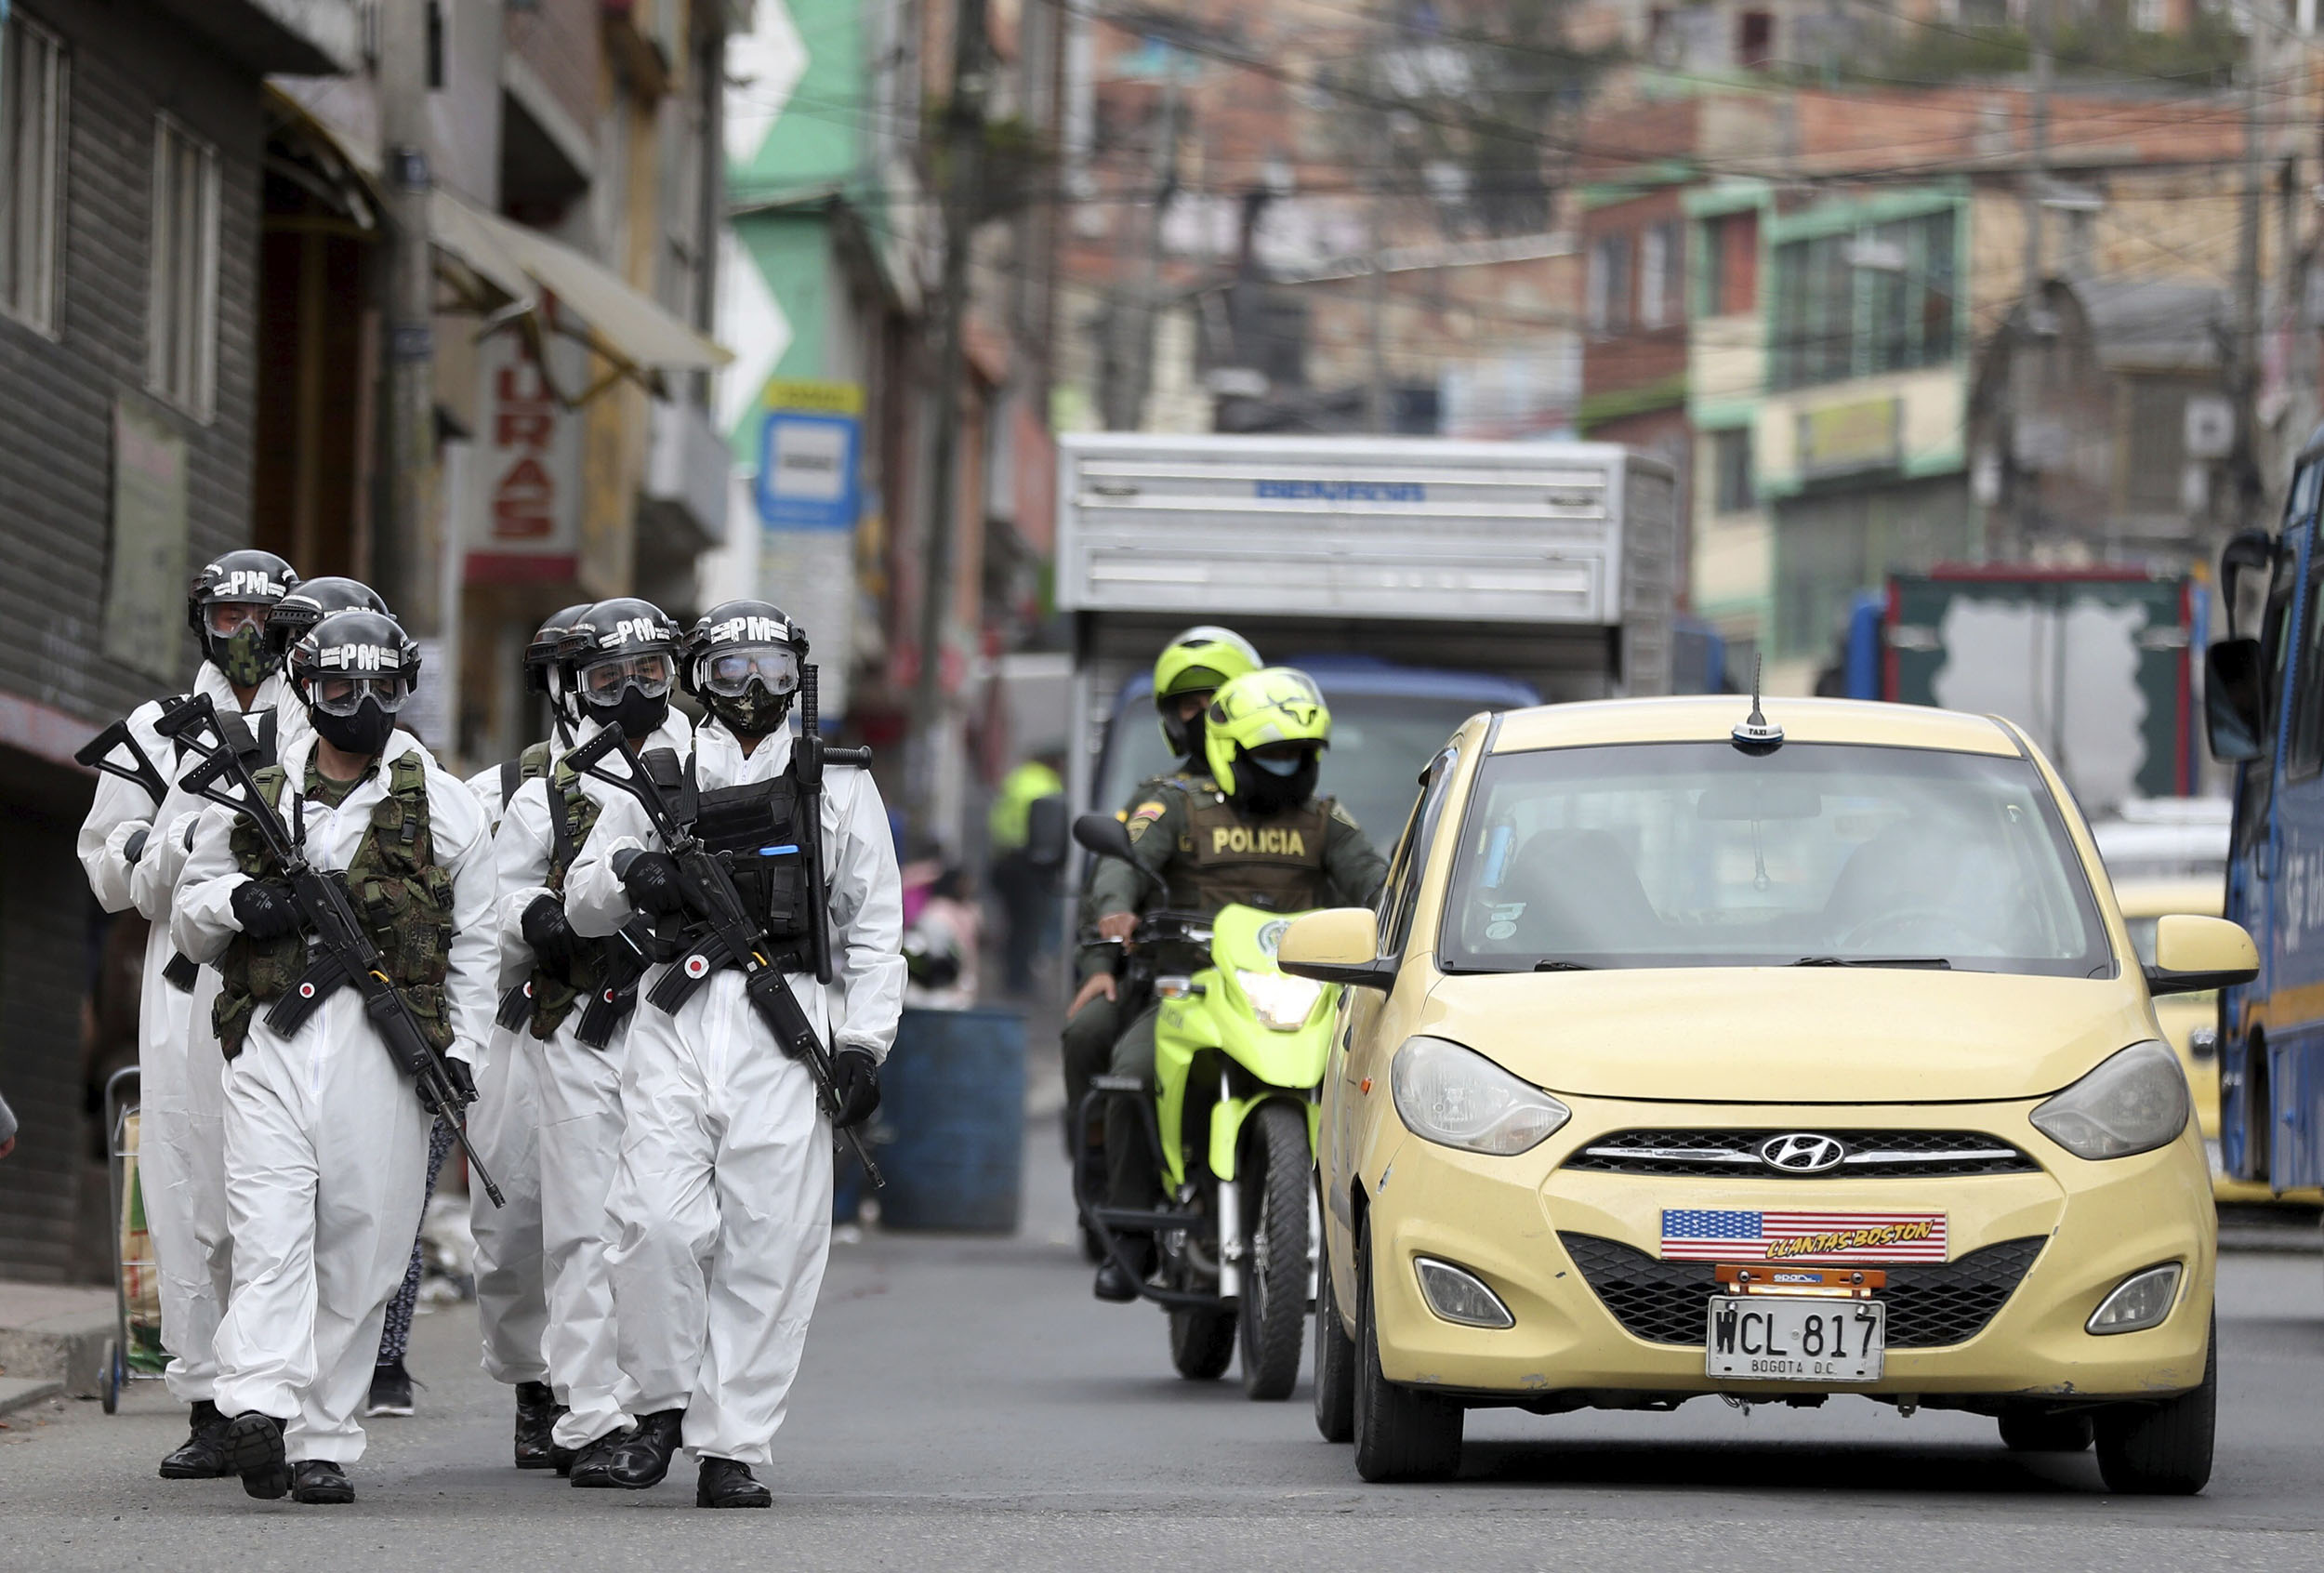 Soldiers patrol a neighborhood in Bogota, Colombia, on July 13.